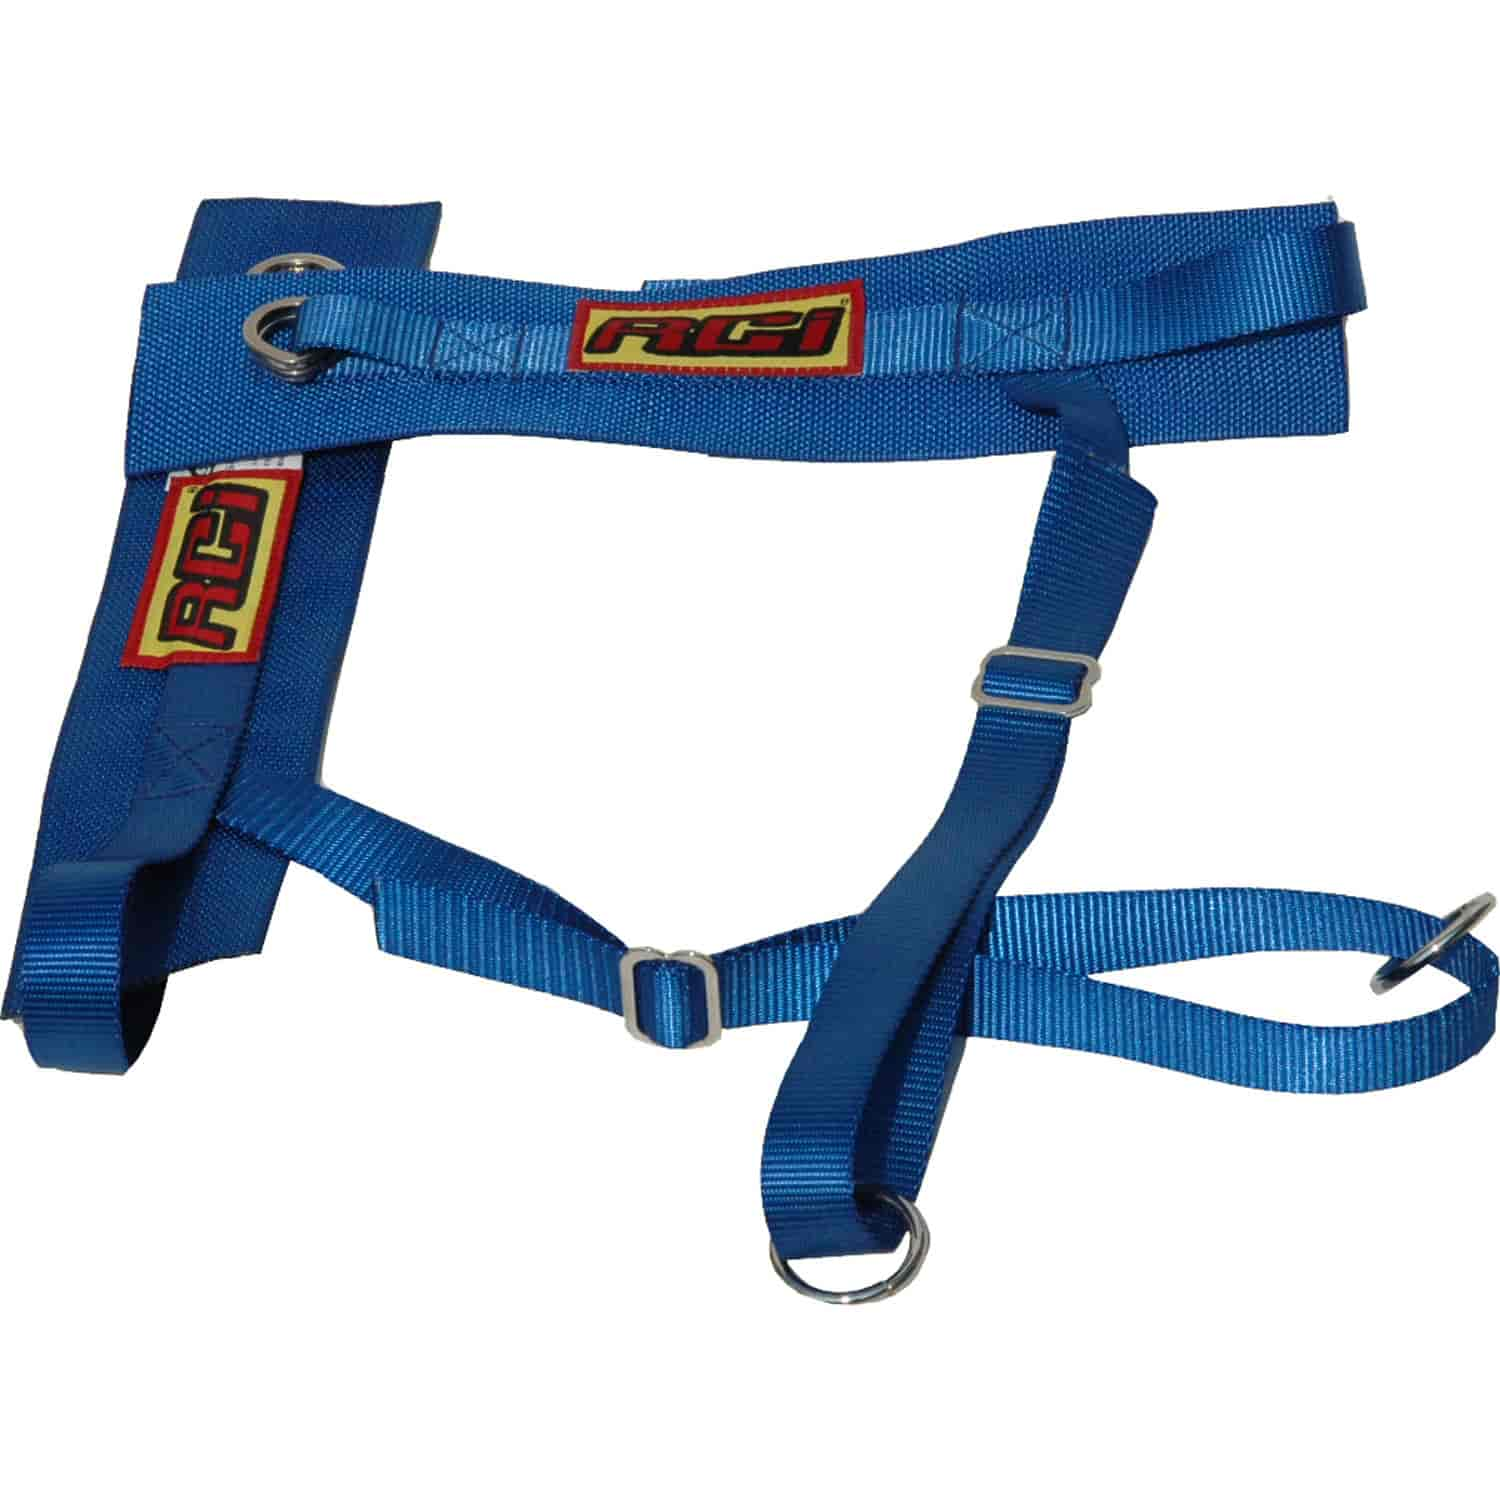 RCI 9462C - RCI Arm Restraints